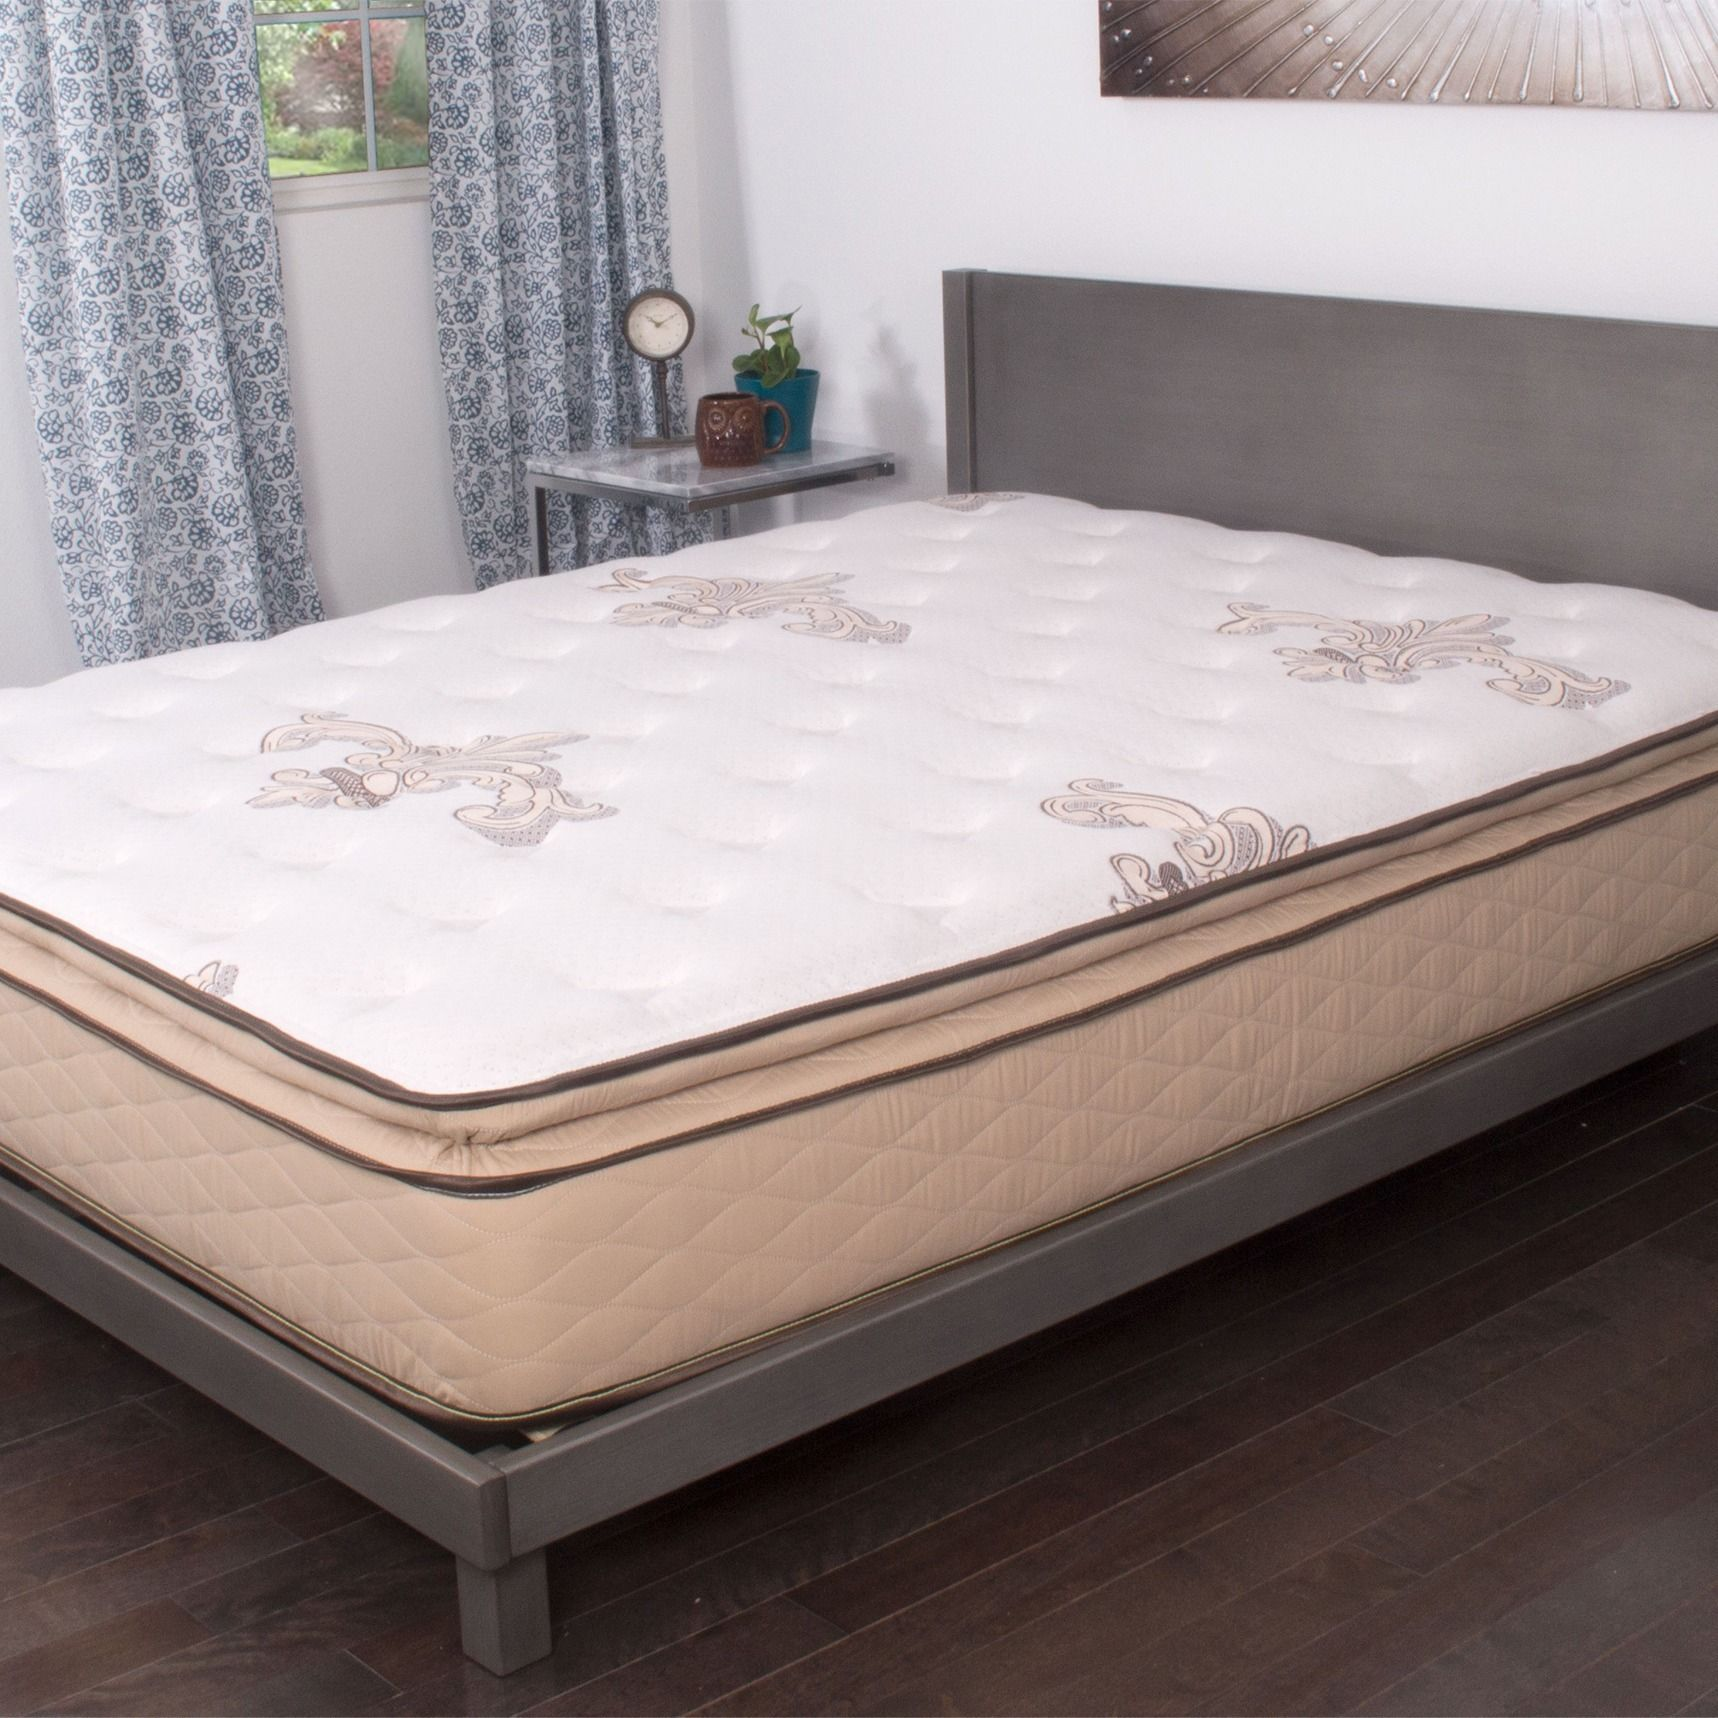 toppers home king pad mattress top bed target pillow size pads topper twin favorites remodelista